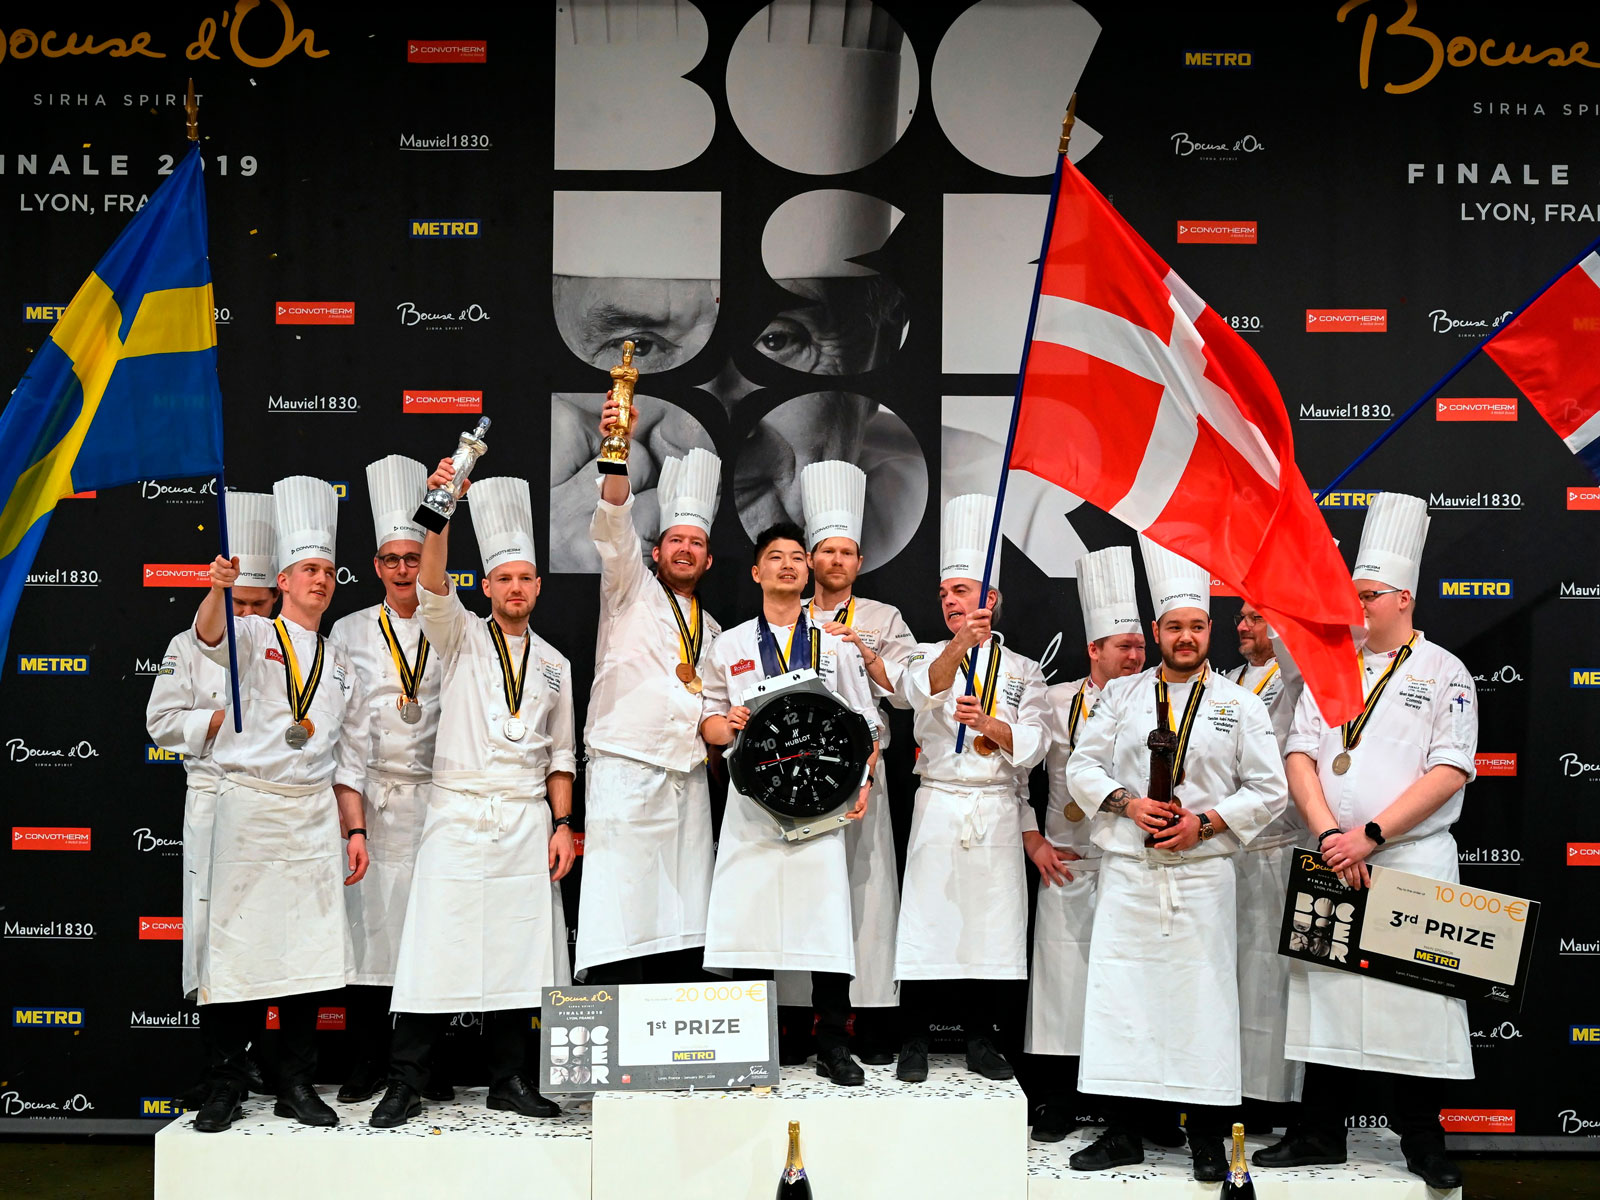 Denmark Wins Bocuse d'Or After Strong Showing from Team USA